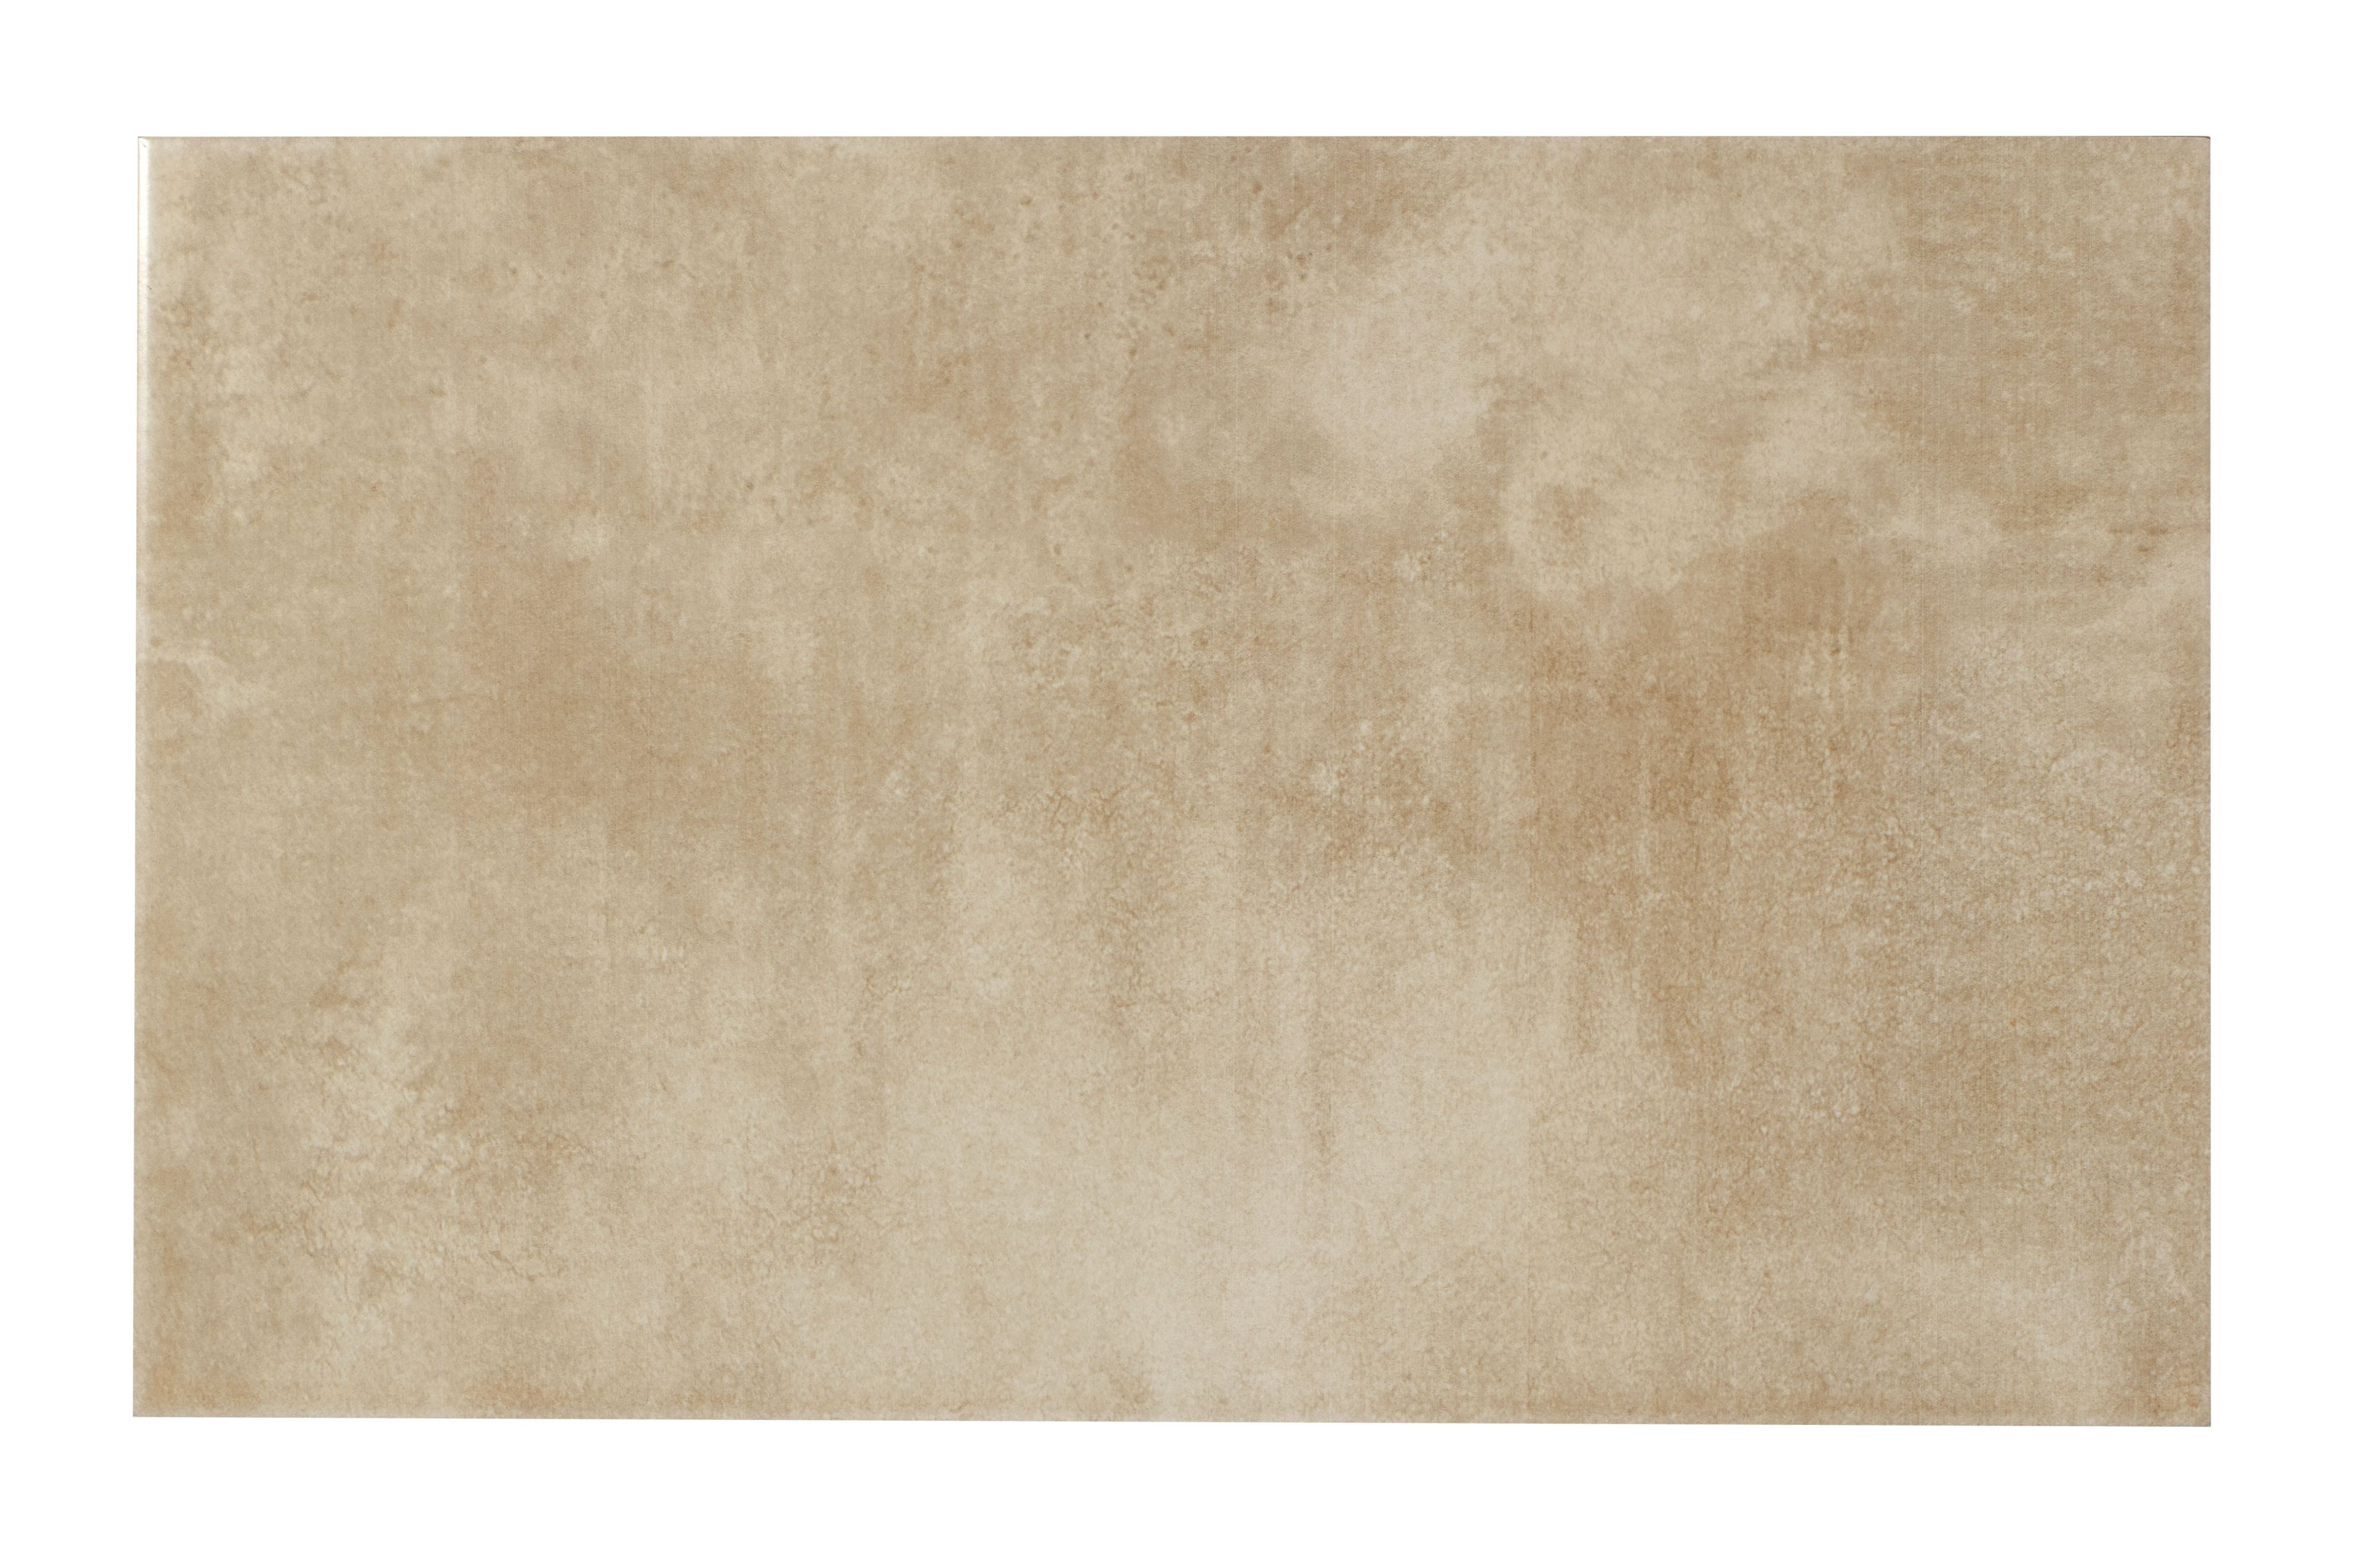 lombardy powder ceramic wall tile pack of 10 l 400mm w 250mm